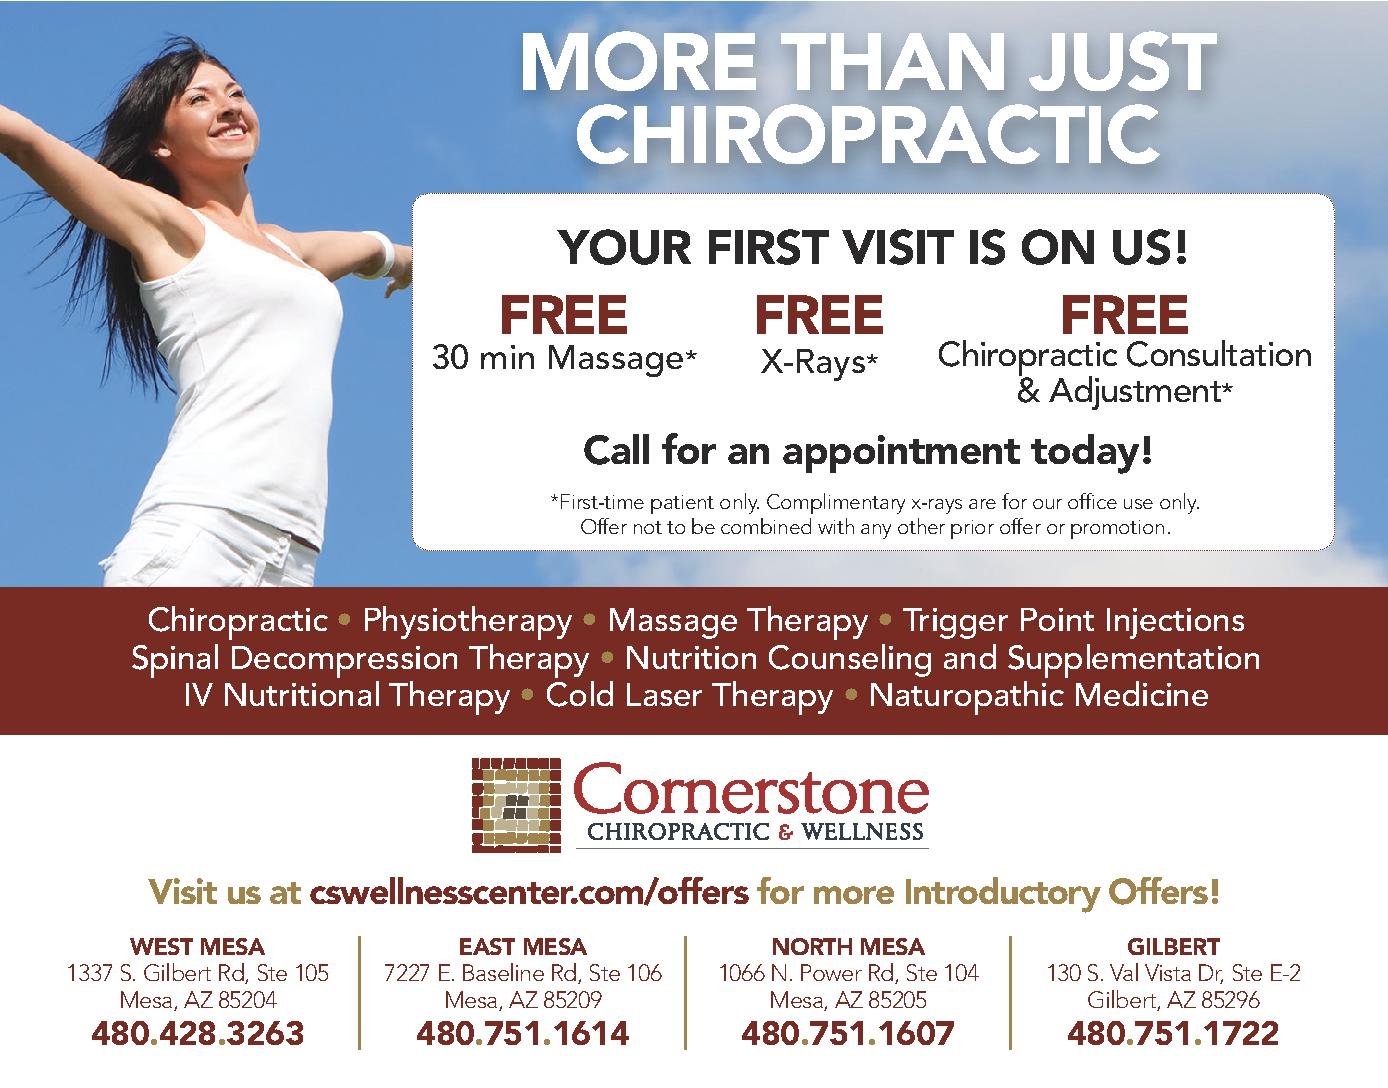 Cornerstone Chiropractic & Wellness Center